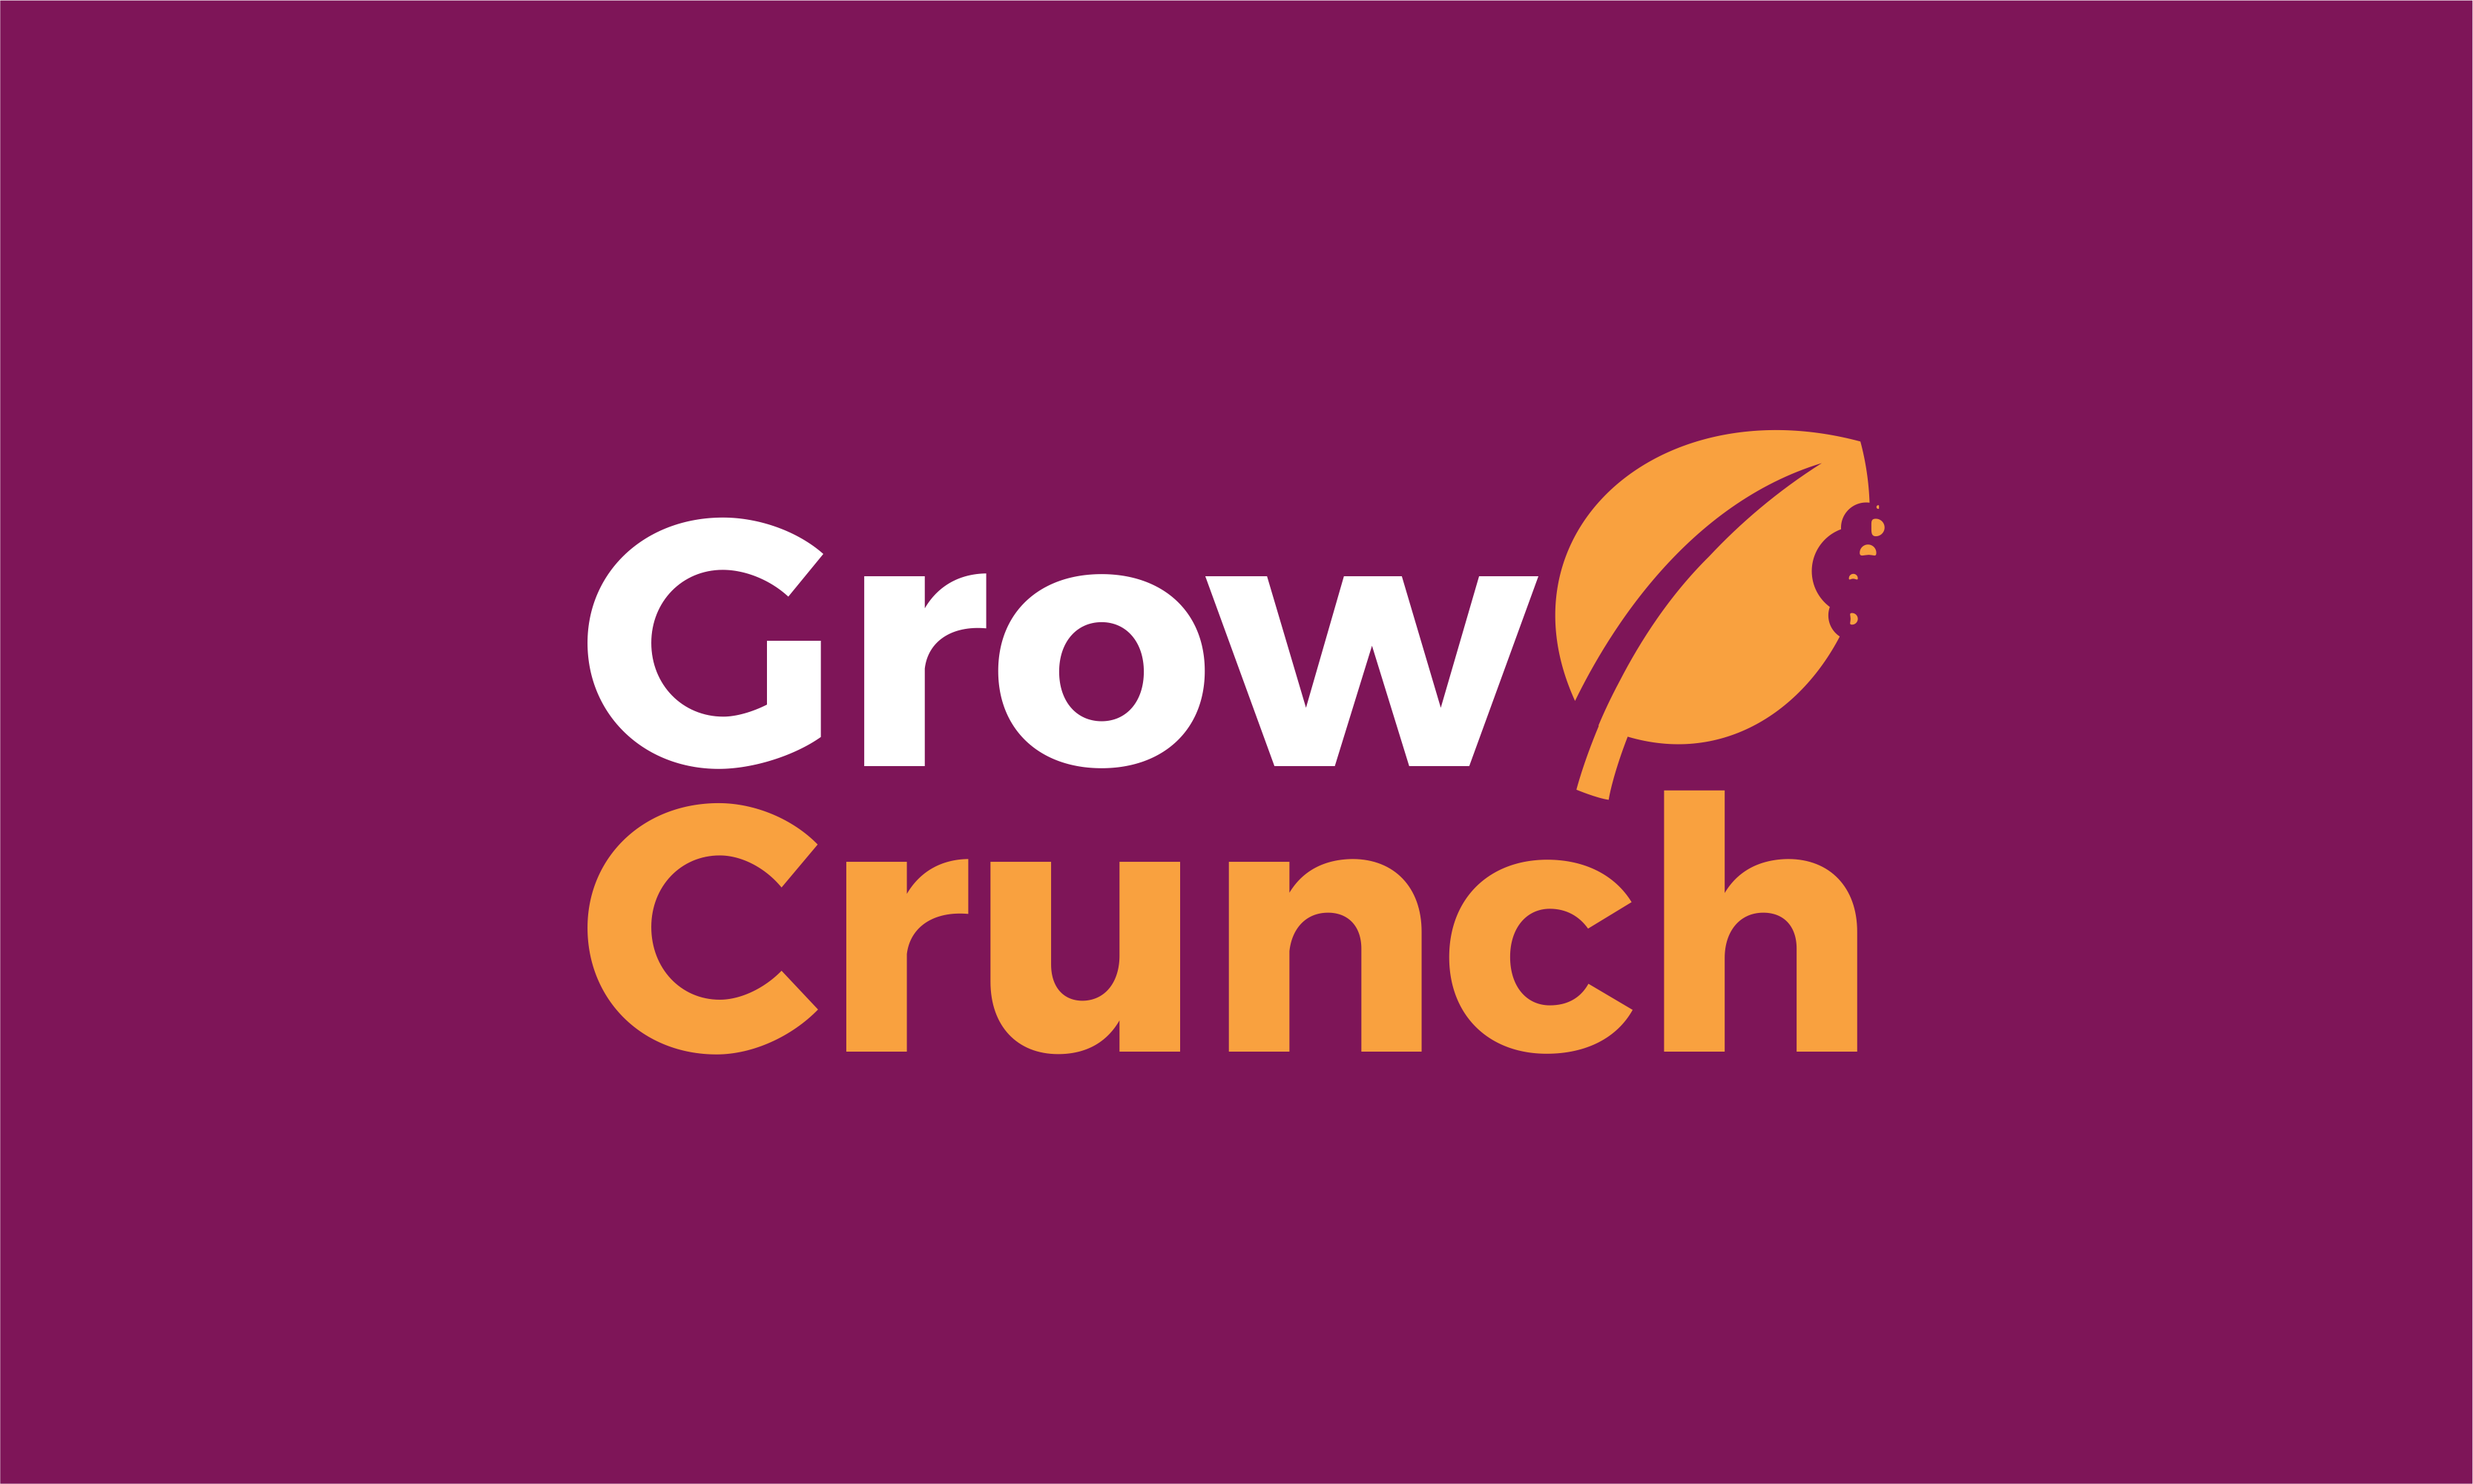 Growcrunch - Dining startup name for sale